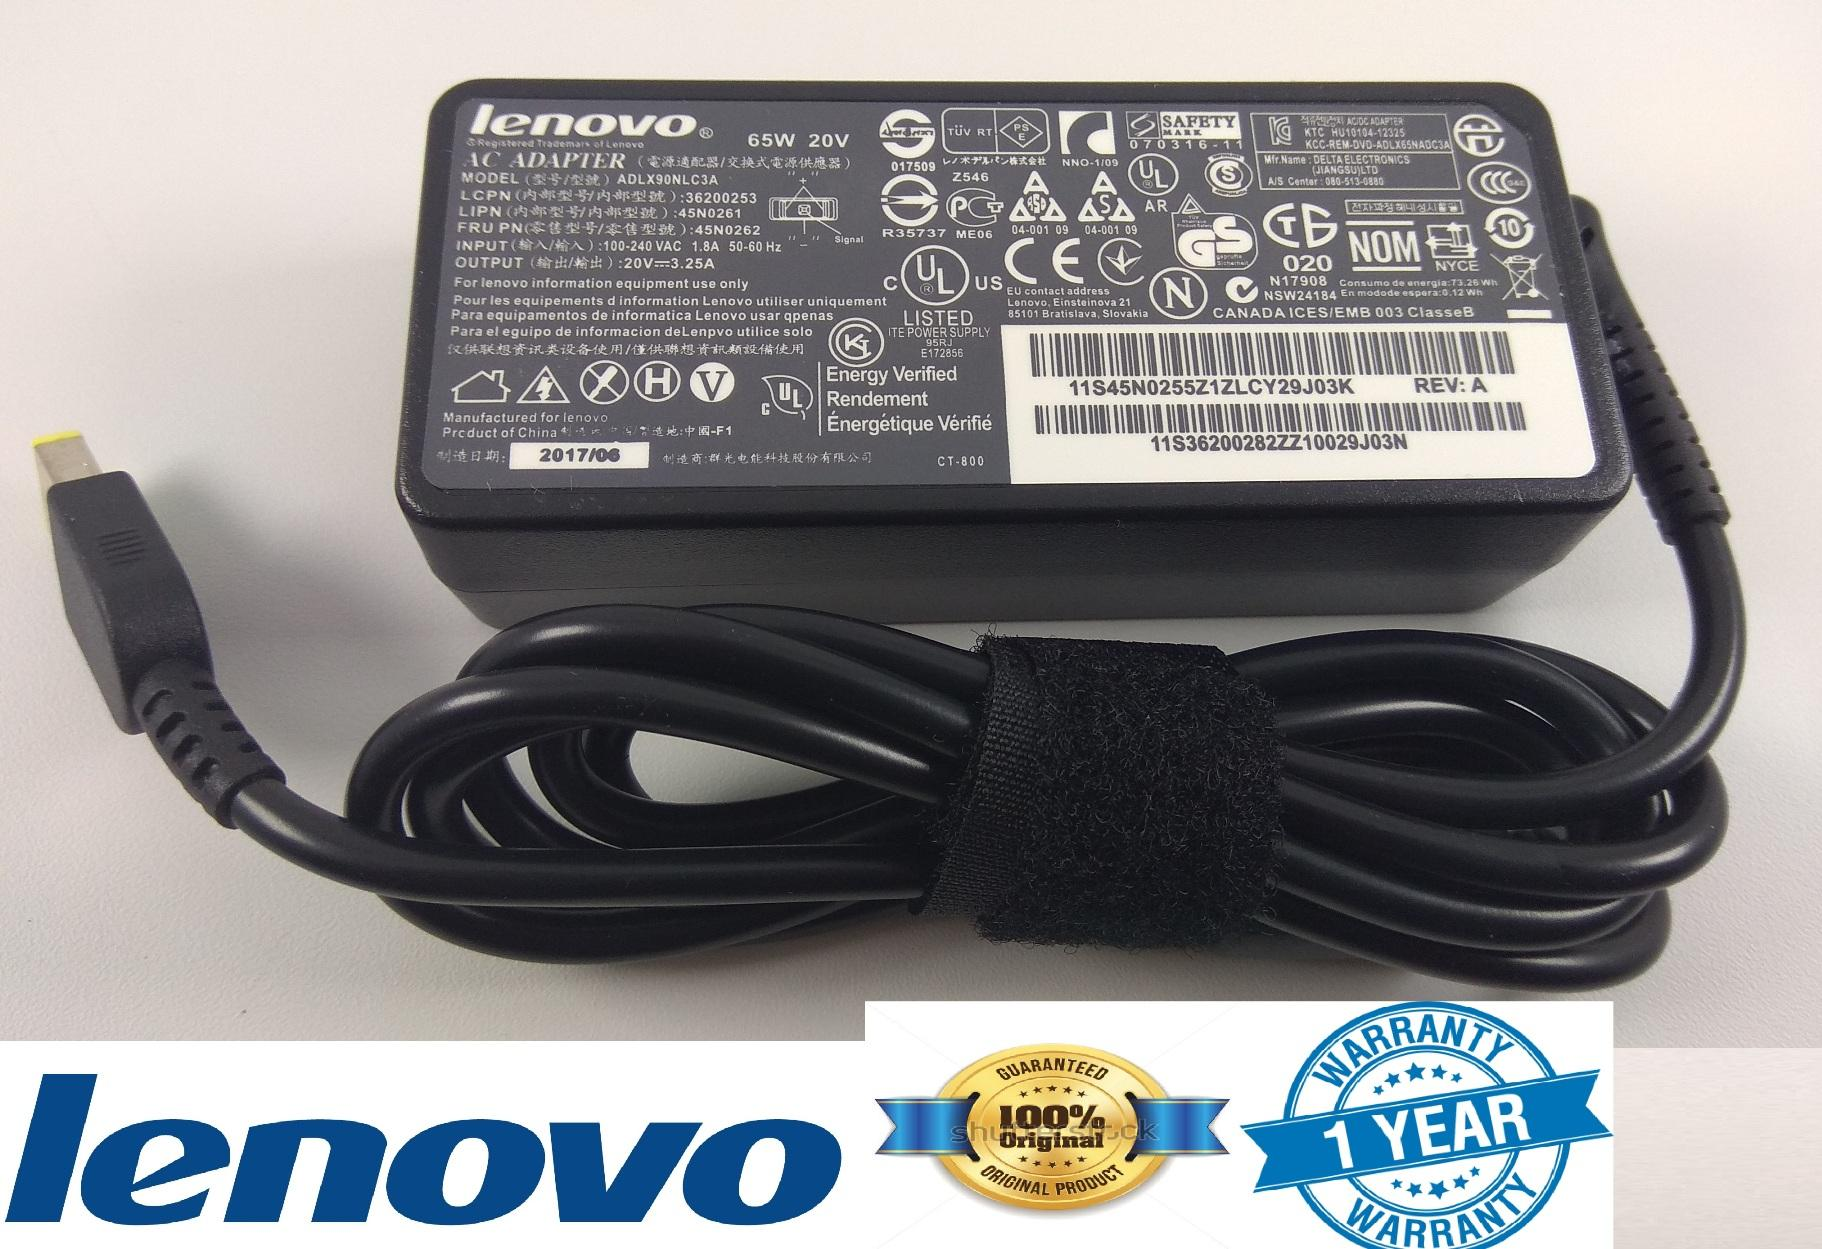 Lenovo Adaptor Charger ThinkPad E440 E540 L440 L540 S431 T540p G400 20v 3.25a (usb) SPECIAL